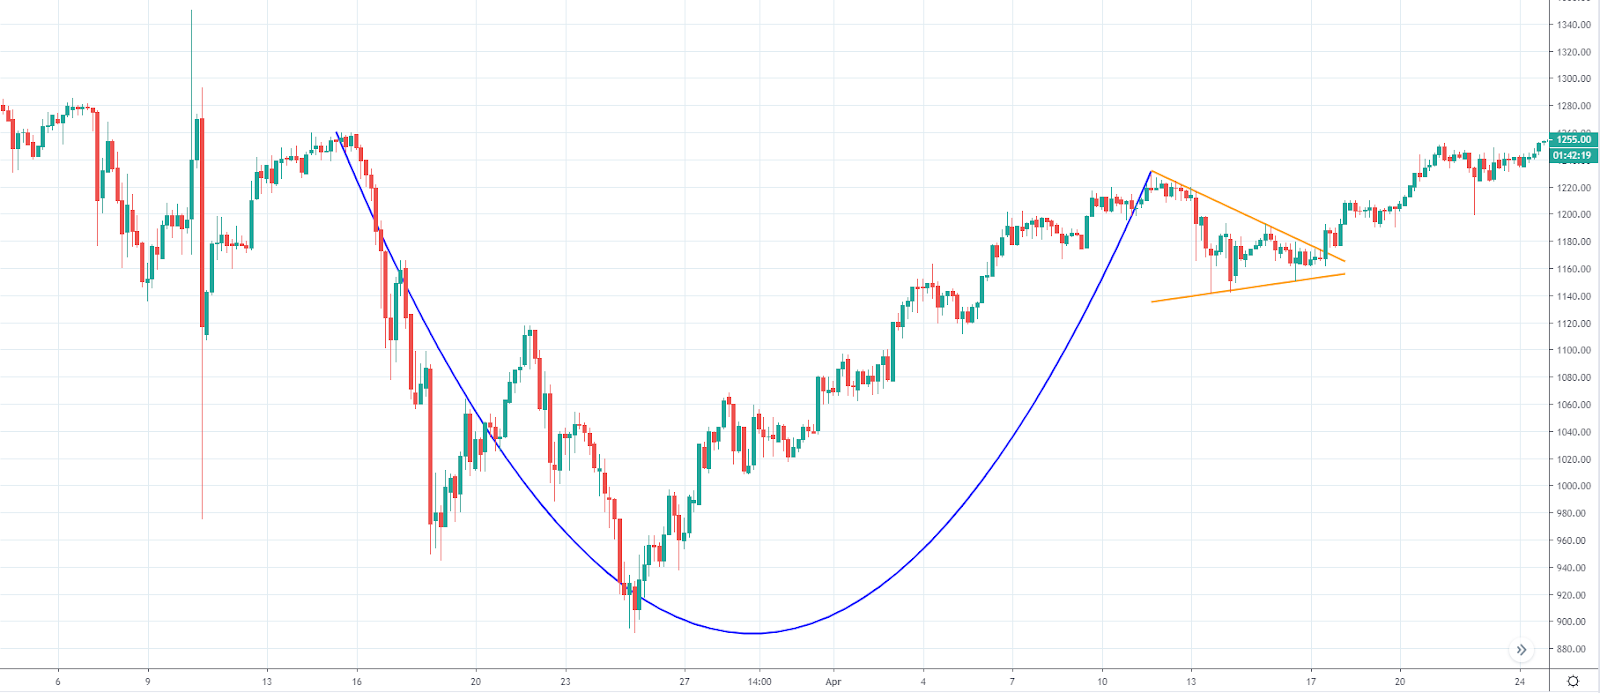 Cup and handle structure (Source: TradingView)